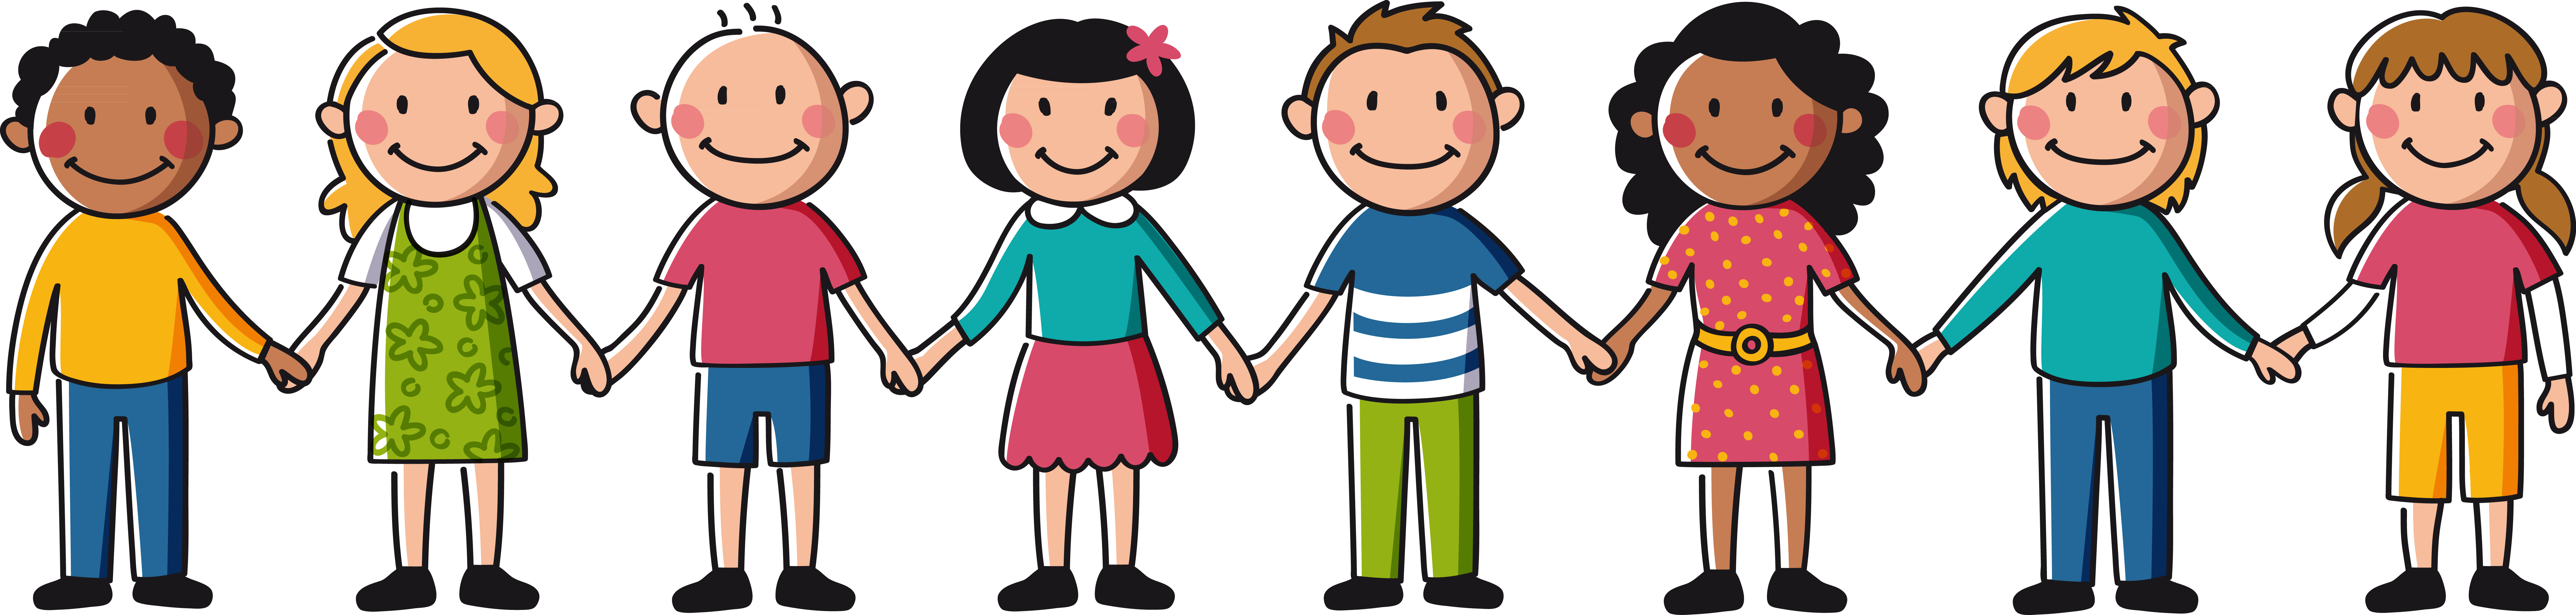 kids holding hands drawing at getdrawings com free for personal rh getdrawings com cartoon holding hands drawing cartoon holding hands drawing